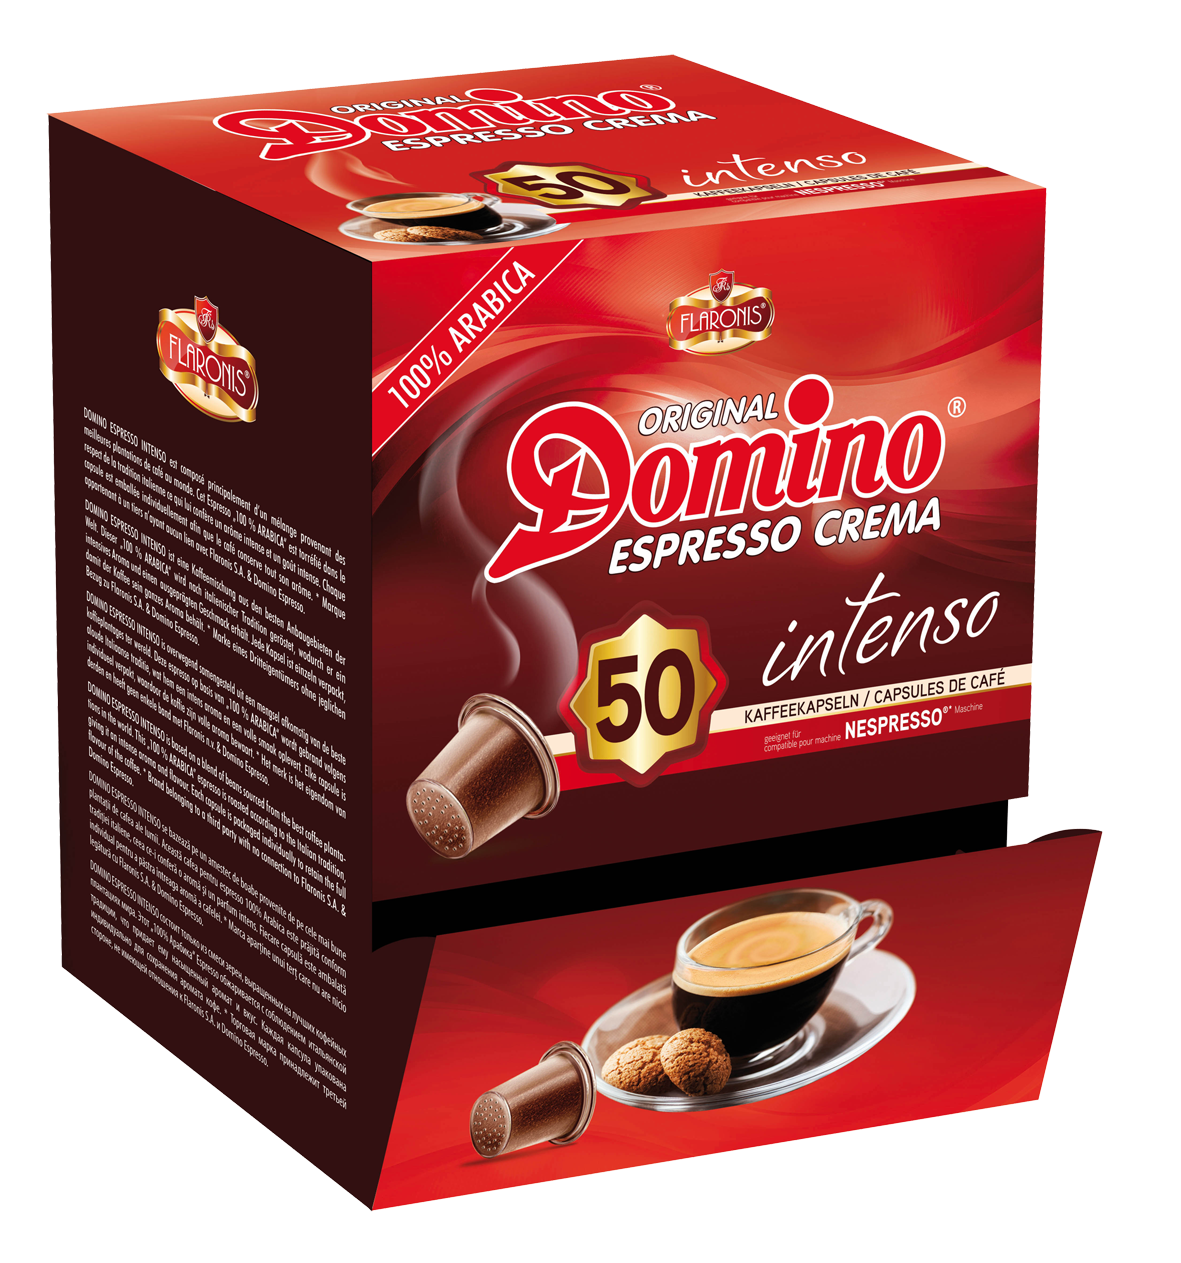 416---Domino_50_Capsules_Intenso2.png